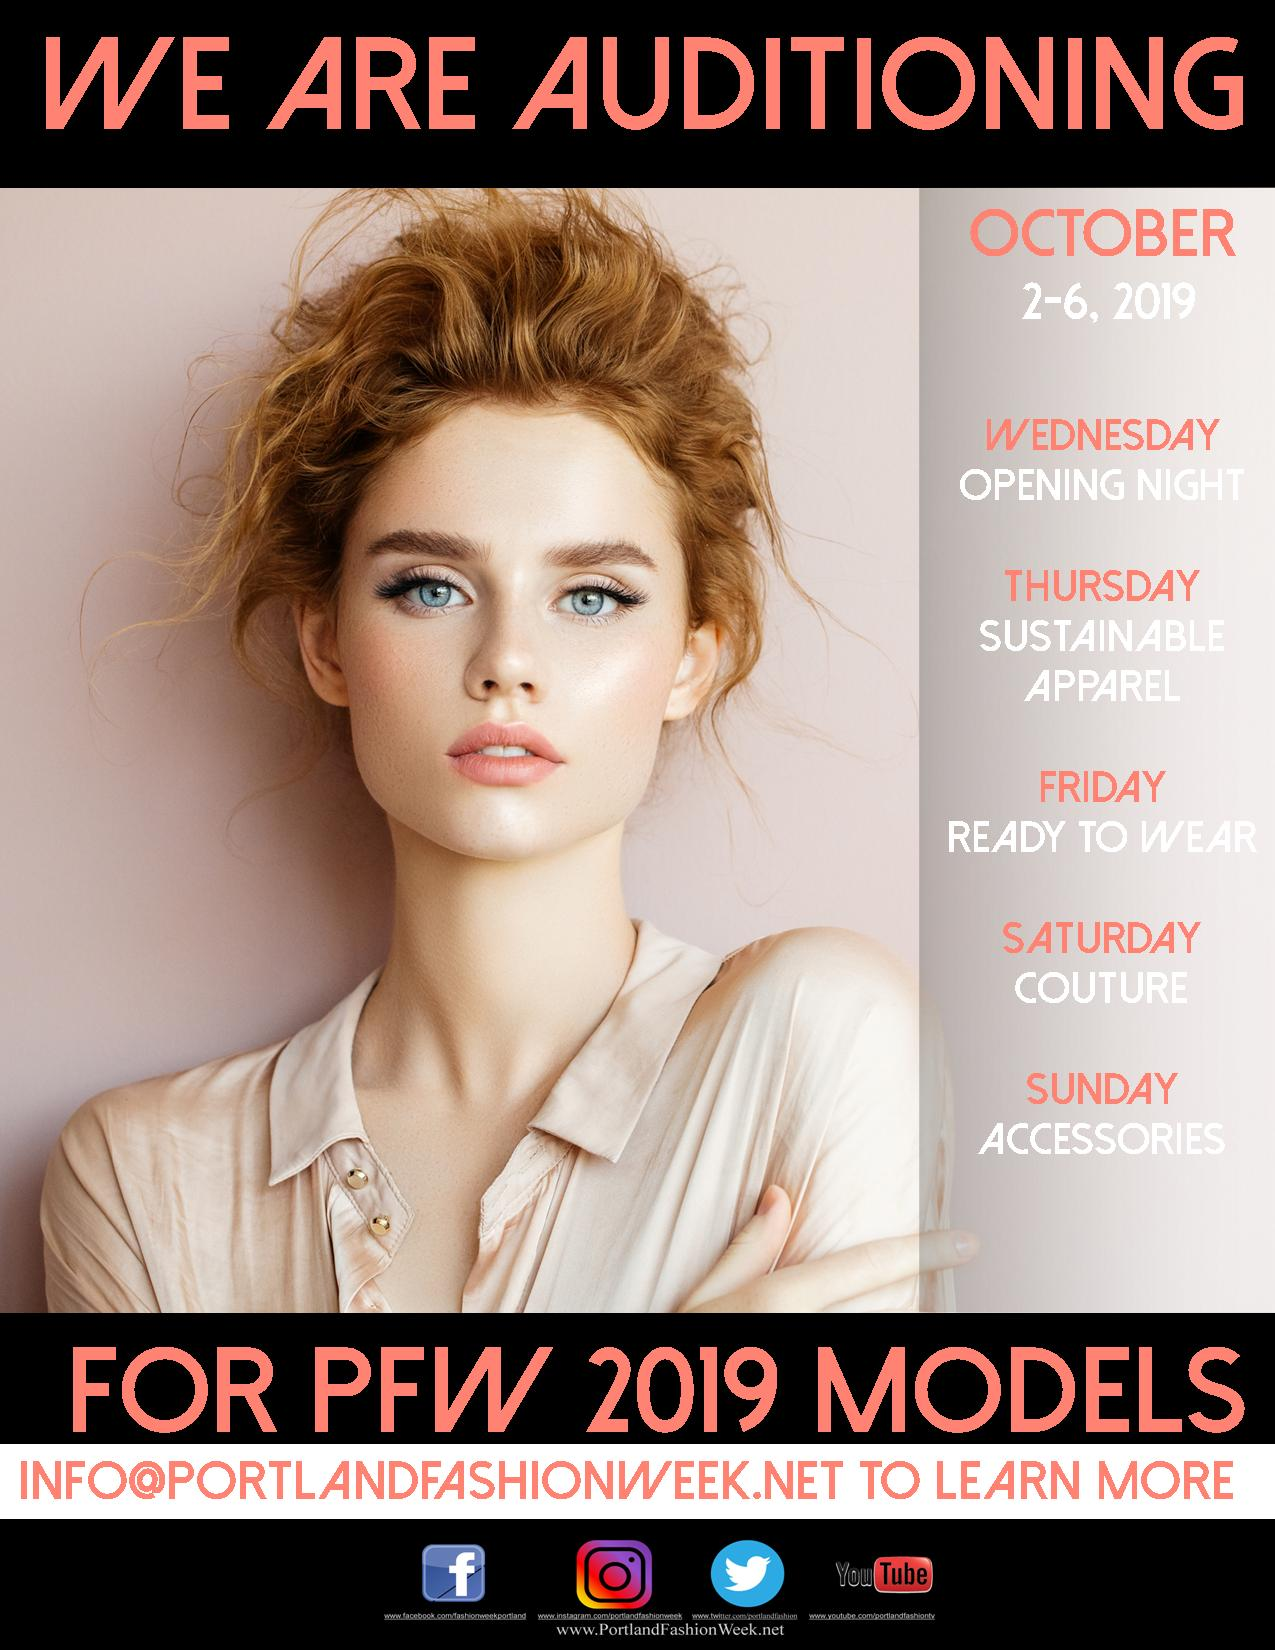 - #Scouting: Become a PFW ModelPortland Fashion Week holds several model searches throughout the year, attracting standout novice and veteran models from across the nation. With Model Search Events spanning the Portland metro out to Central Oregon, we look for lasting impressions that will resonate with our designers and audience.What happens at a PFW Model Search?We run a well oiled machine to see, on average, 75 models in under an hour. As models check in, they are asked to sign an NDA and fill out a stat sheet, for later. Our team will then lead our potential models through a series of steps including a still photo, professional measurements, and a recorded runway walk. While we wish we had time to chat with all of our potential models, our panel of professional judges are focused on viewing and reviewing all candidates, to then share decisions with our team who will be in contact with those, selected.Interested in starting the process and auditioning to be a PFW model? Contact us at model@portlandfashionweek.net. Please include your stats (height, weight, bust, waist, inseam, dress size, shoe size, hair/eye color), a headshot, and full body photo (check out our Model Casting Policy for more details). A member from our team will reach back to you with upcoming Model Search information.*Note: Our next open casting is July 6th!